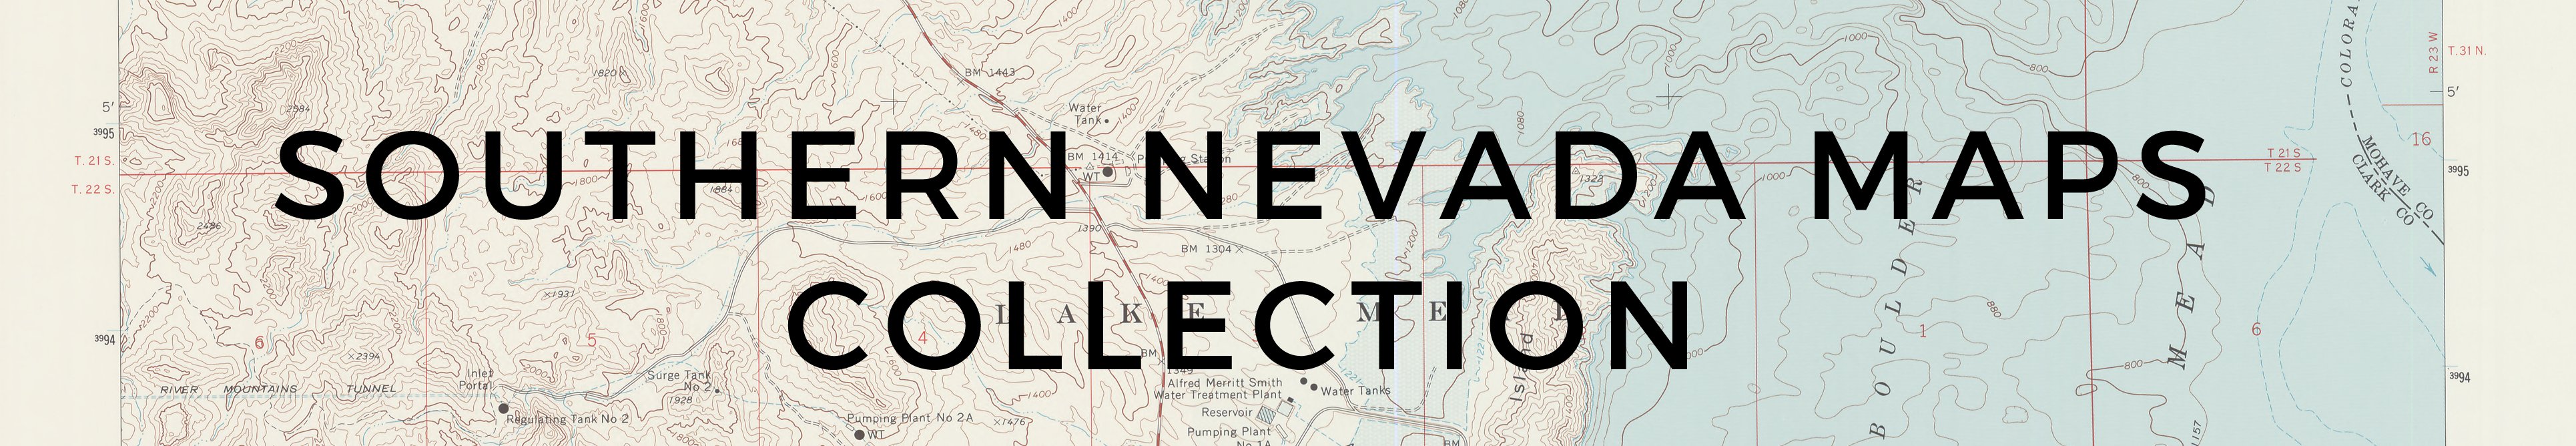 Southern Nevada Maps